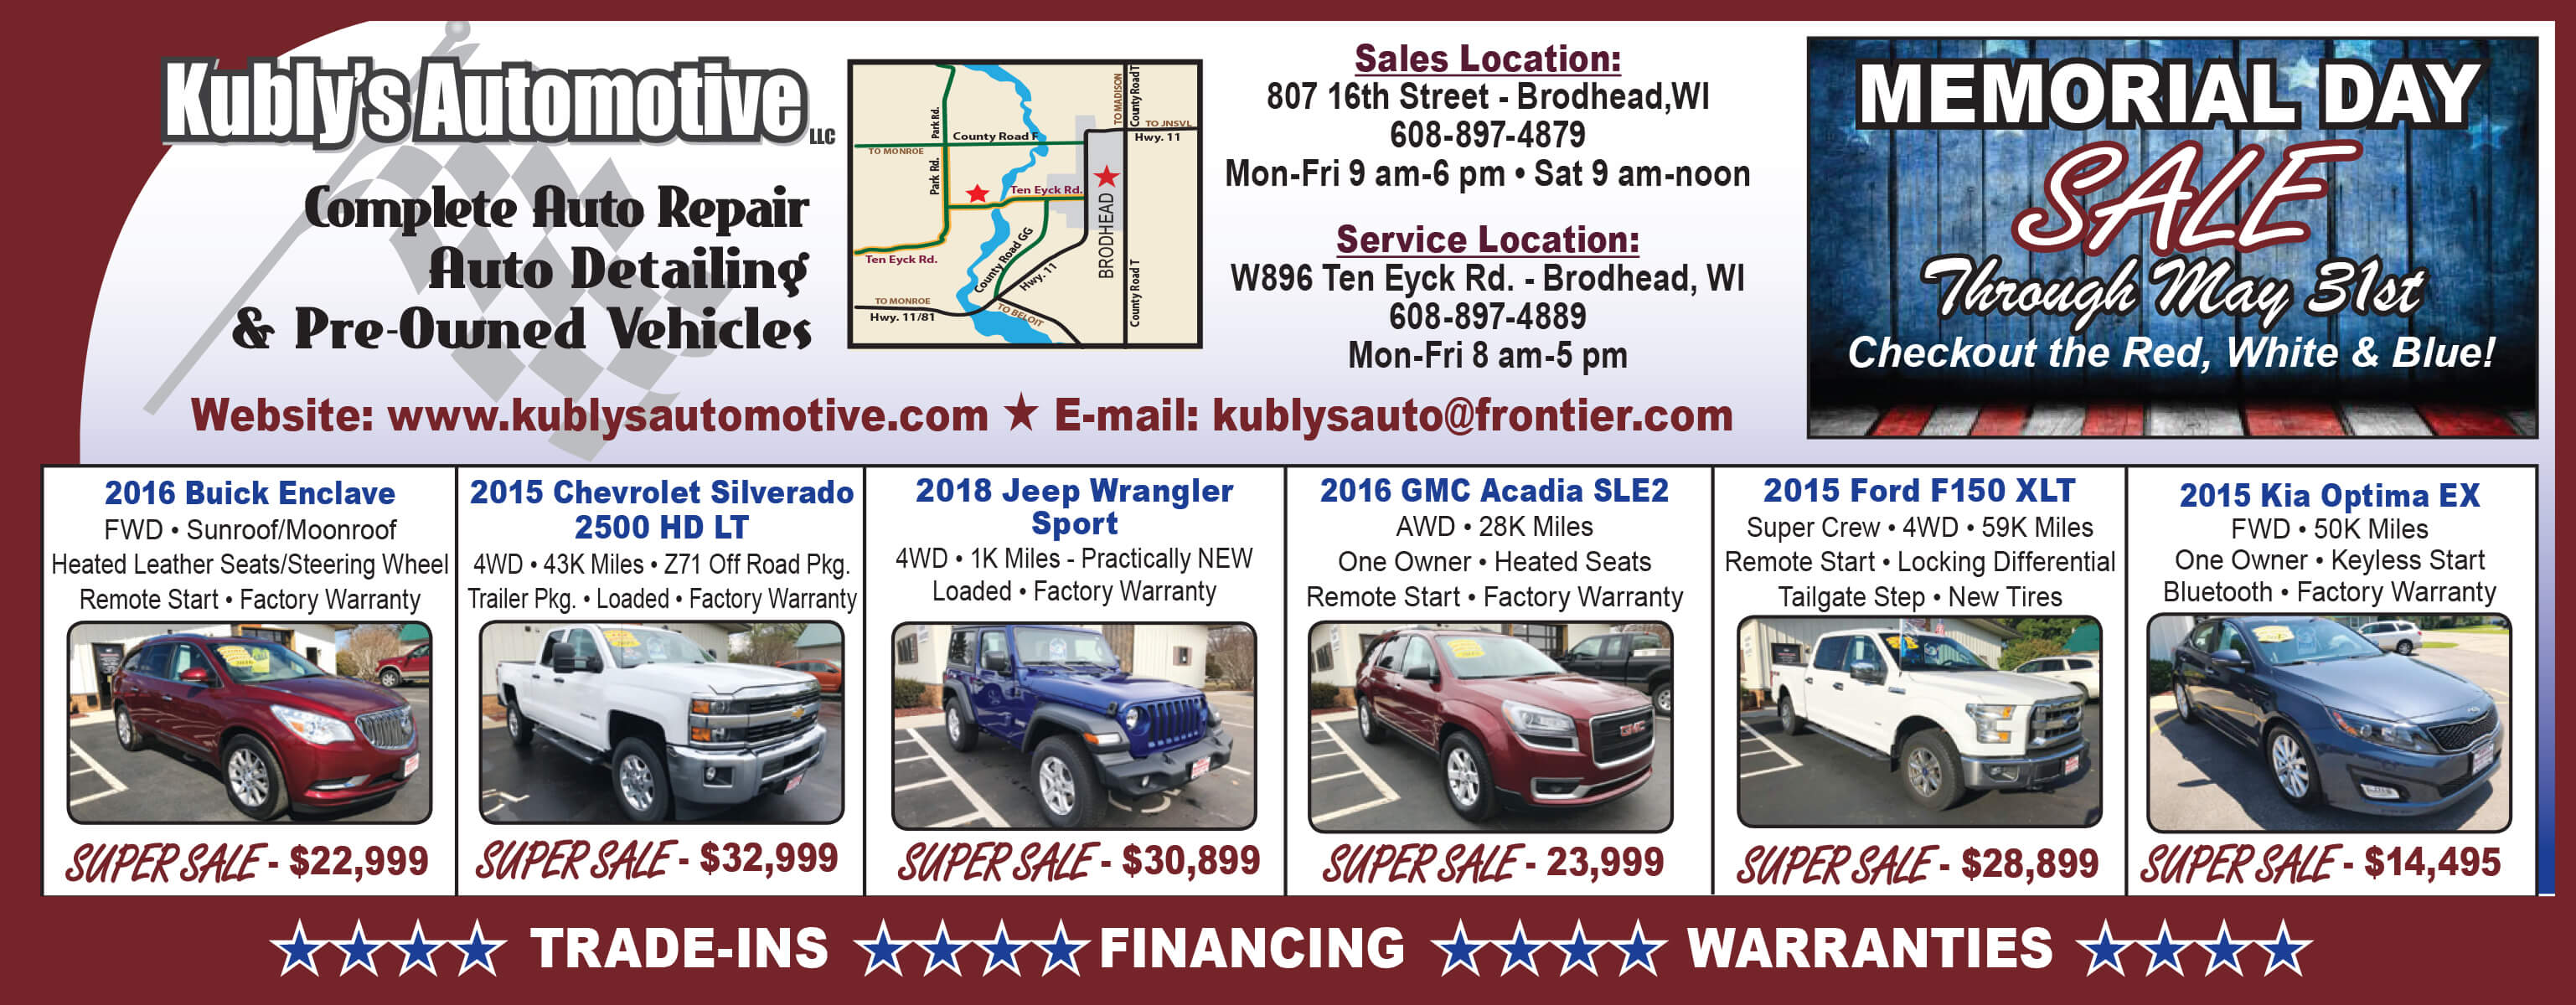 Memorial Day Car Sale >> Memorial Day Sale Through May 31st Pre Owned Vehicle Super